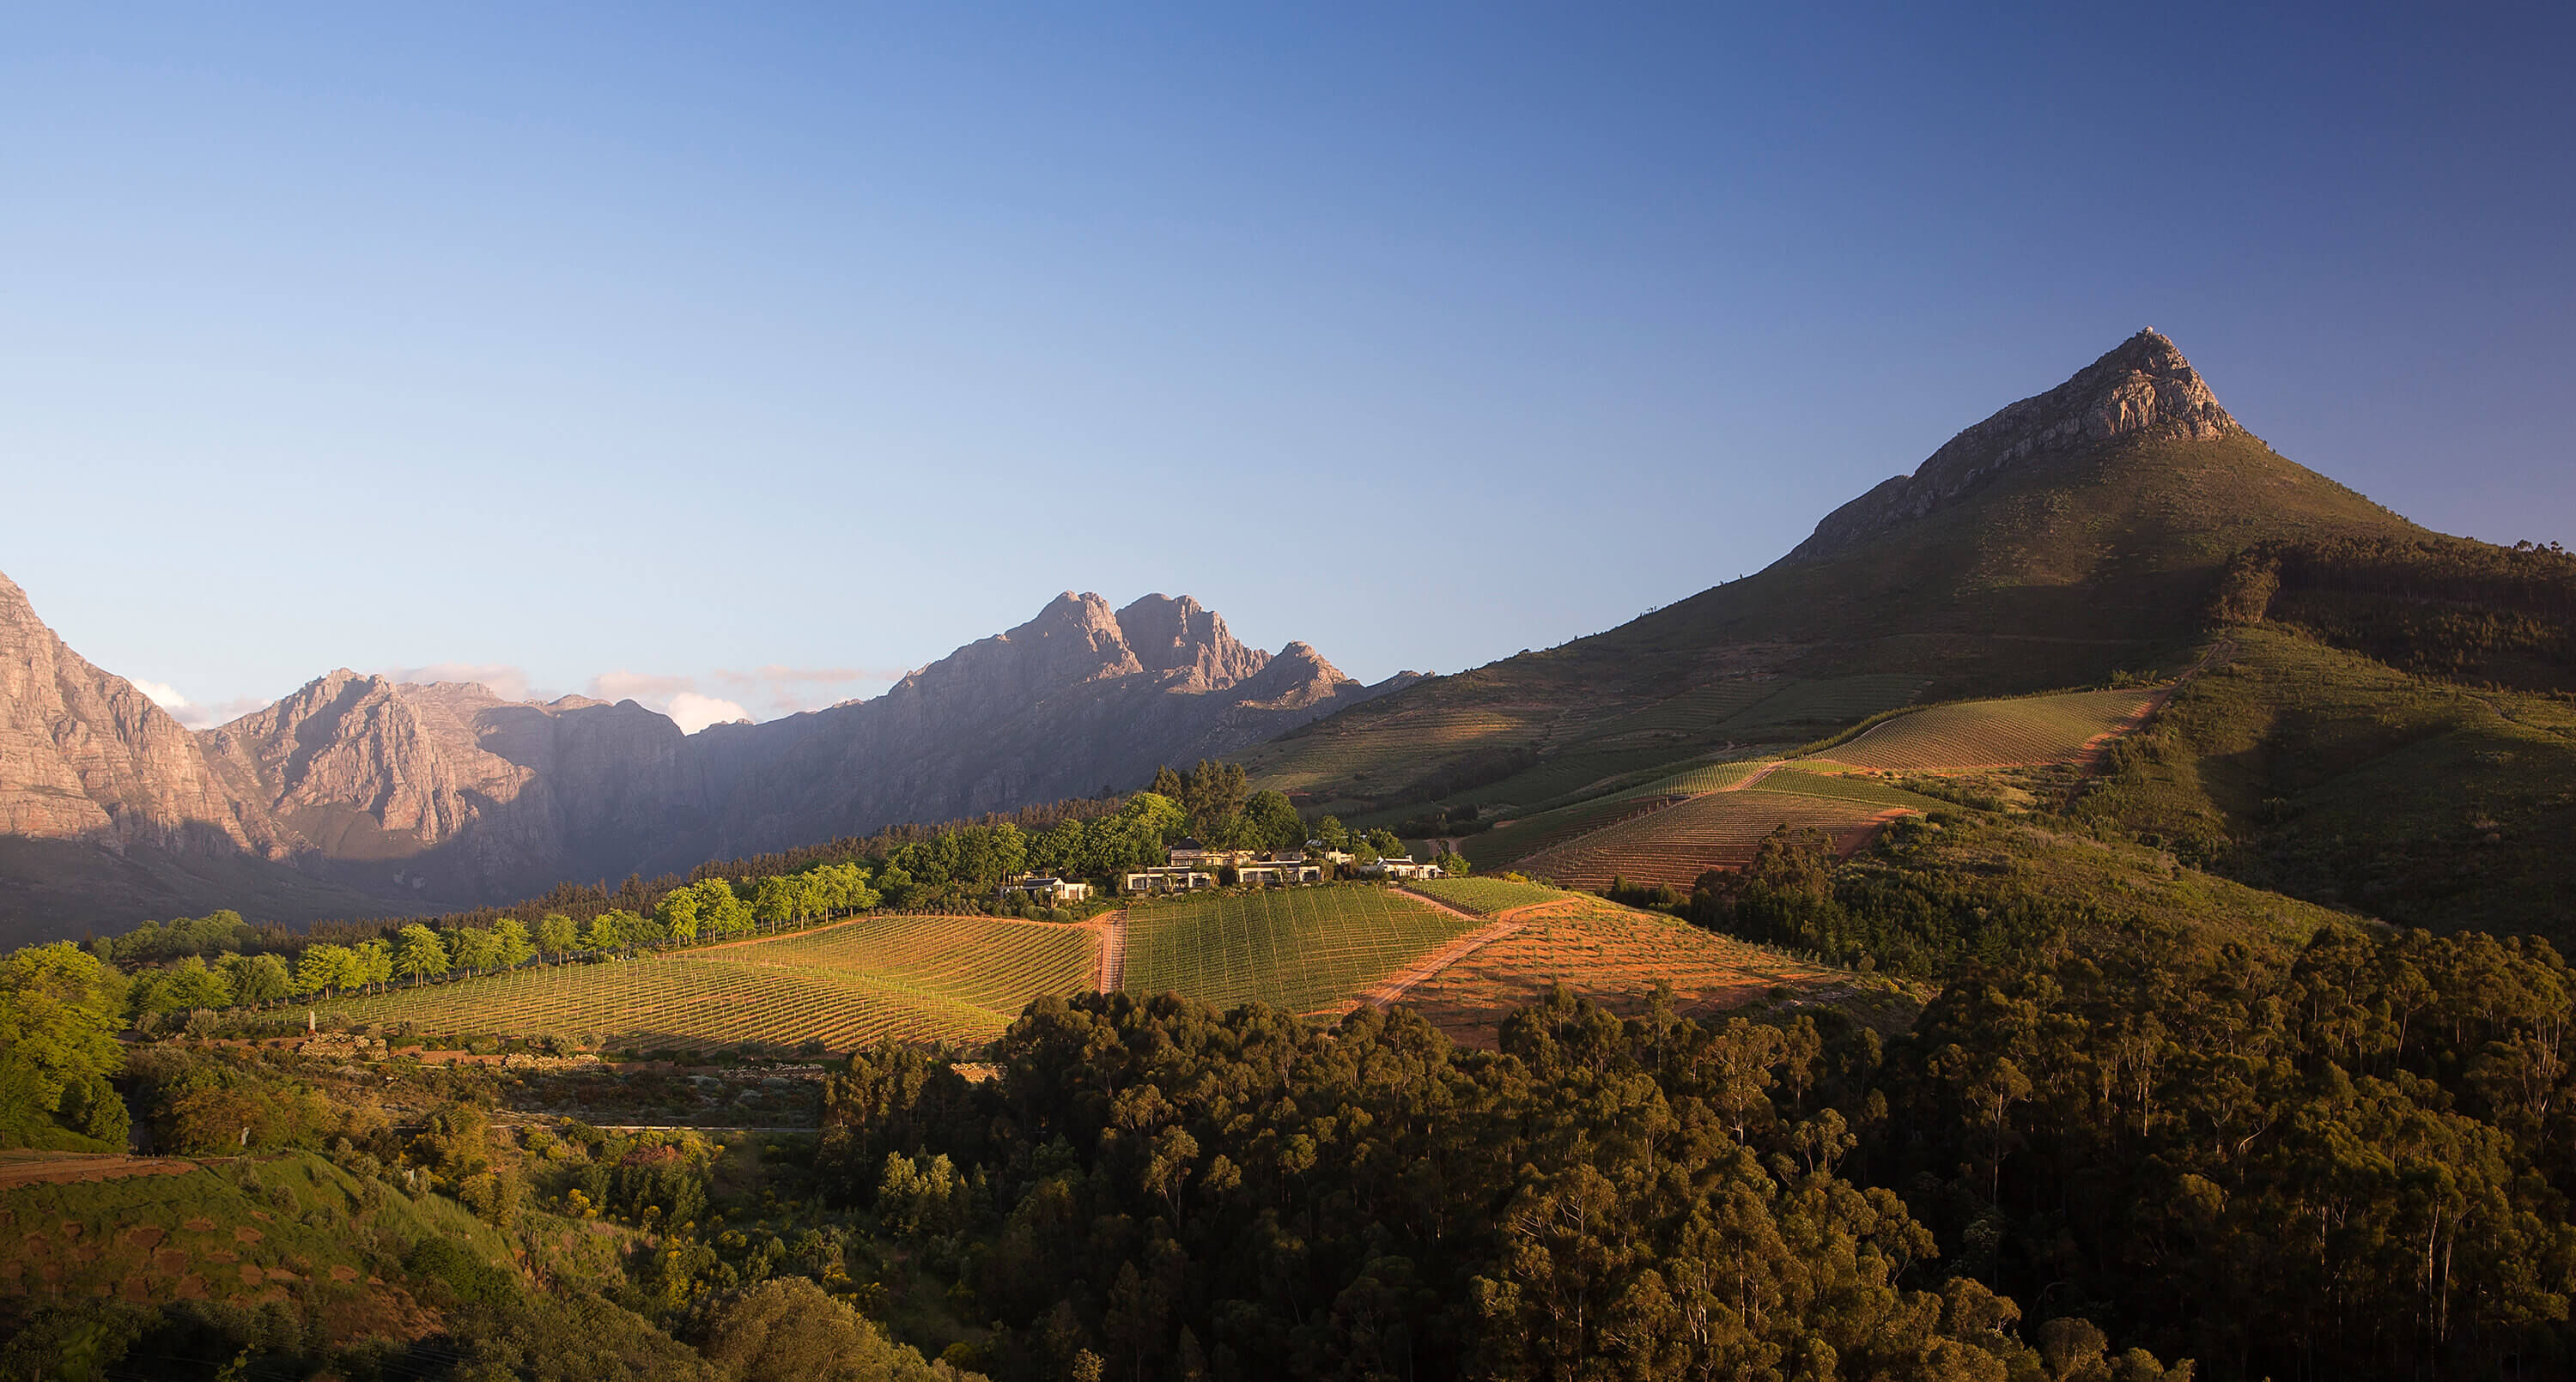 View of the Delaire Graff Estate in Stellenbosch, South Africa